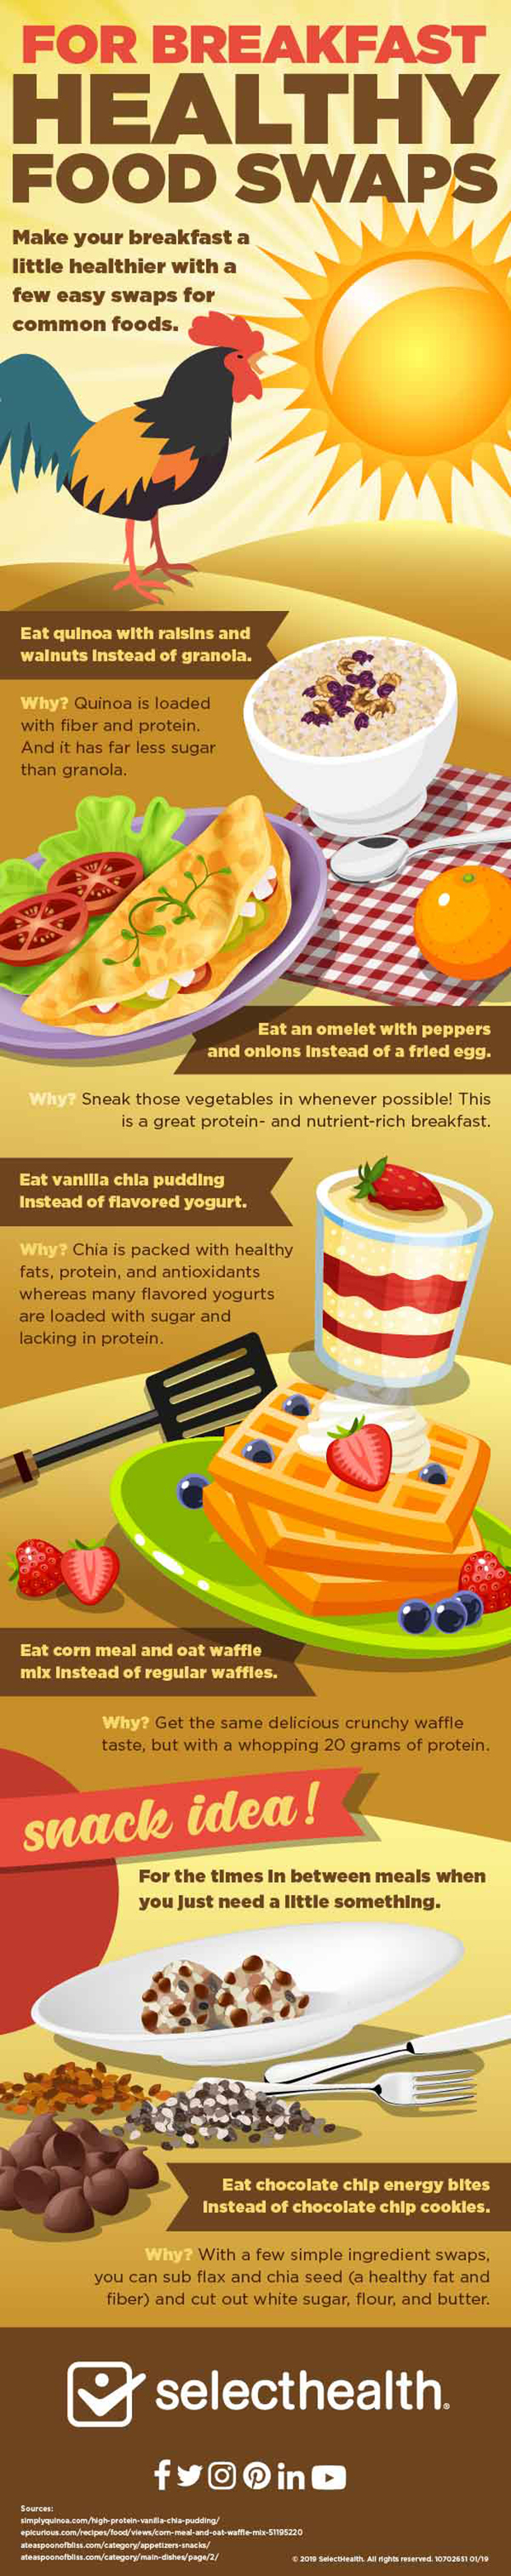 Infographic illustrating healthy food swaps for breakfast